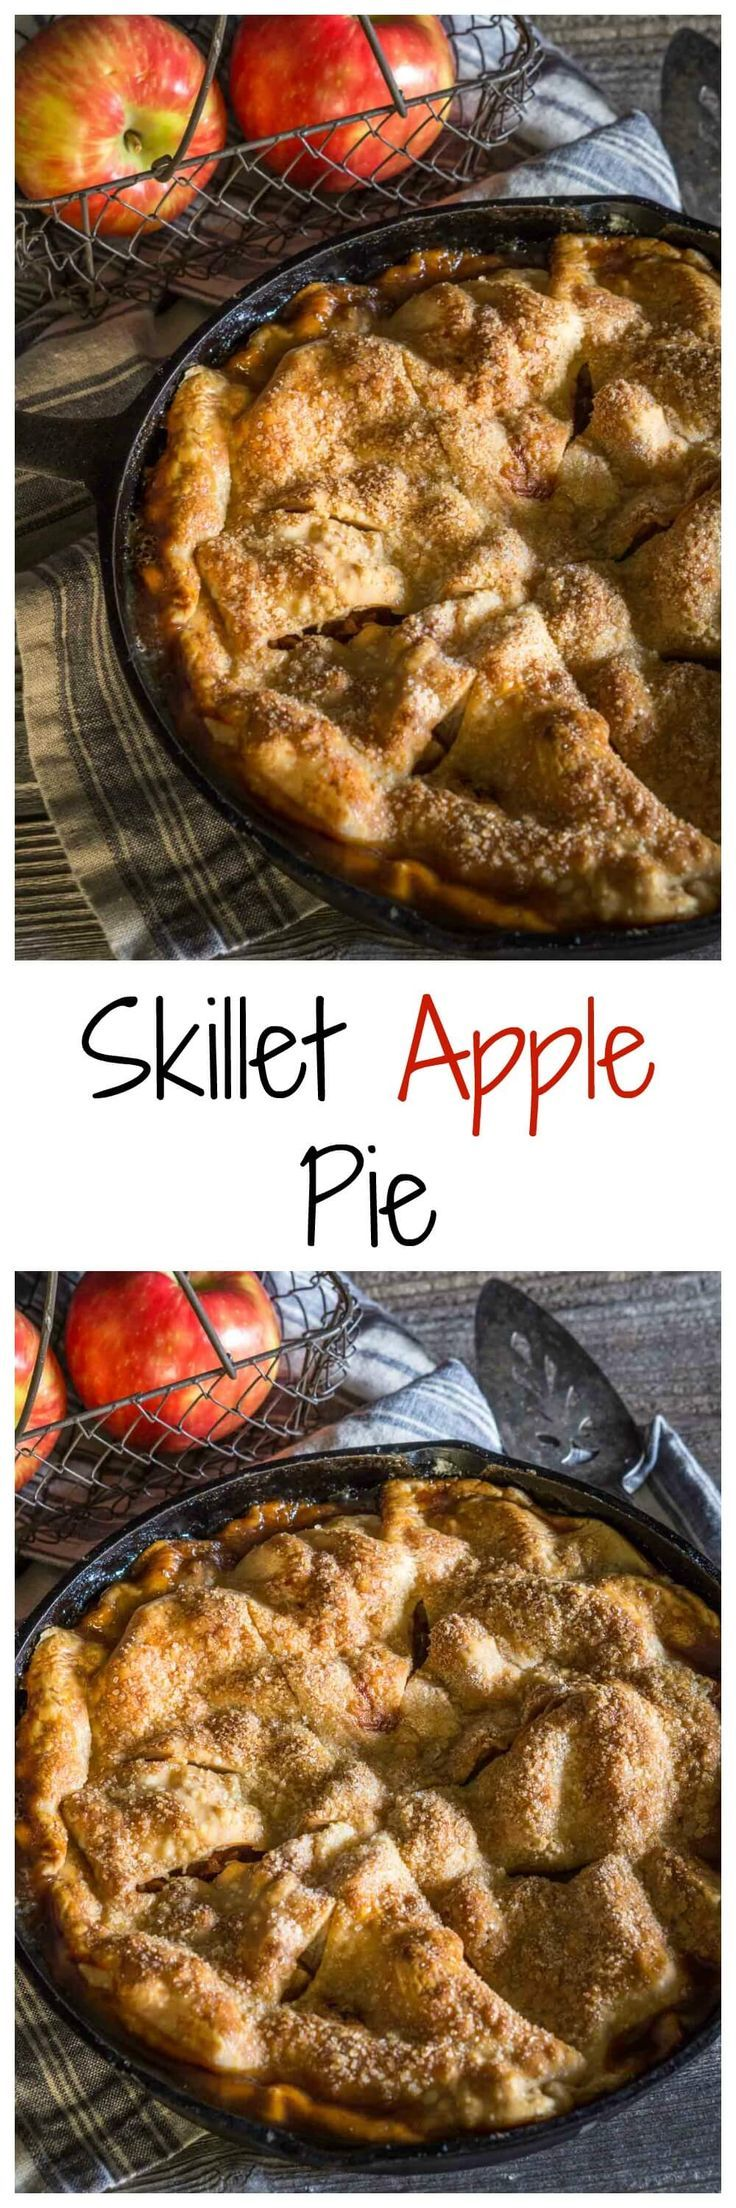 Beautiful and rustic Skillet Apple Pie has a buttery crust that's filled with a delicious warm cinnamon-apple filling. Sliced or scooped, it's scrumptious!